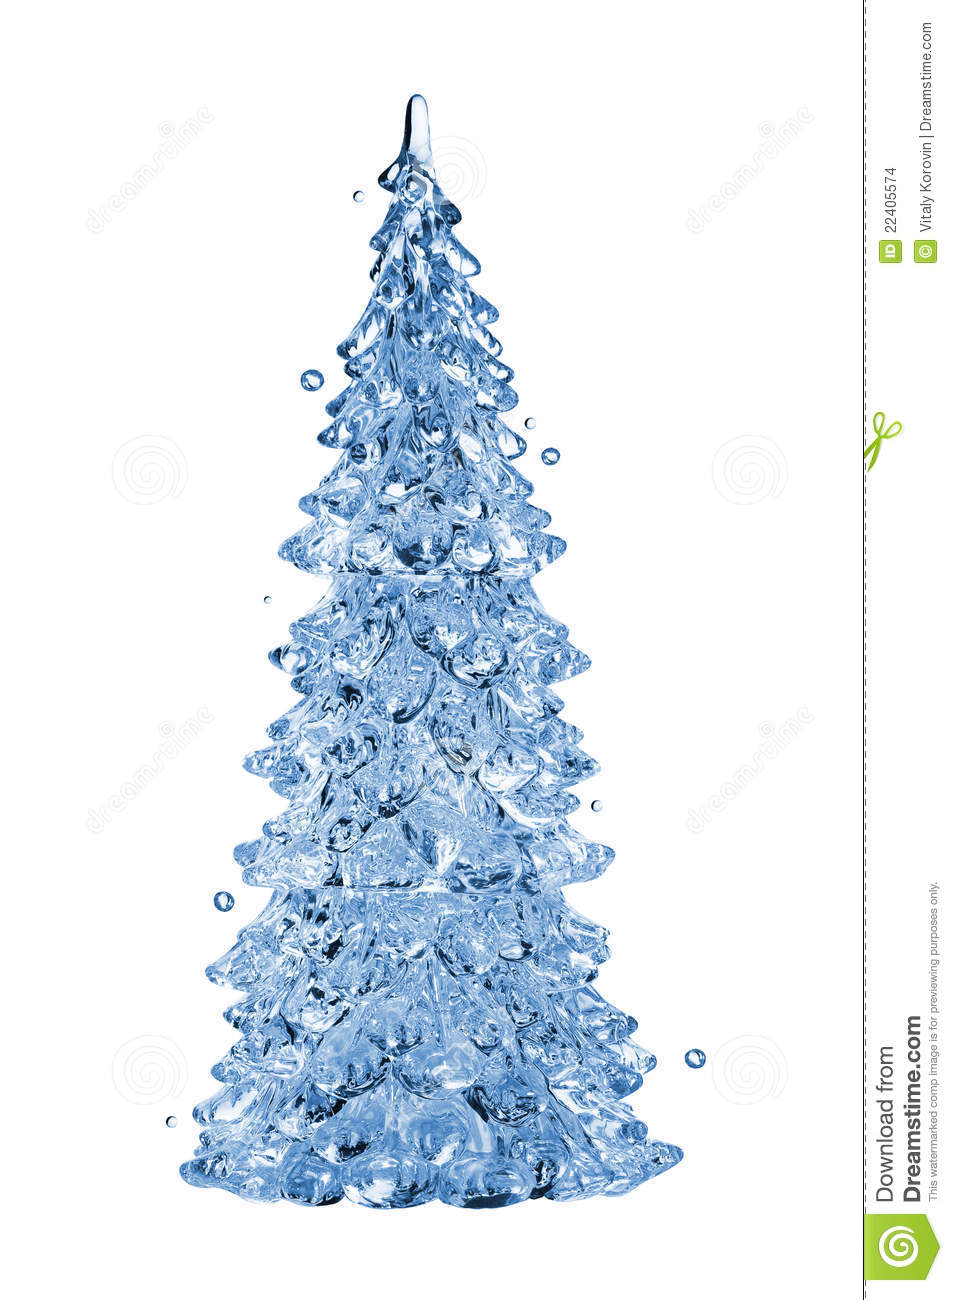 Christmas Tree Water.Christmas Tree Stock Photo Image Of Transparent Color